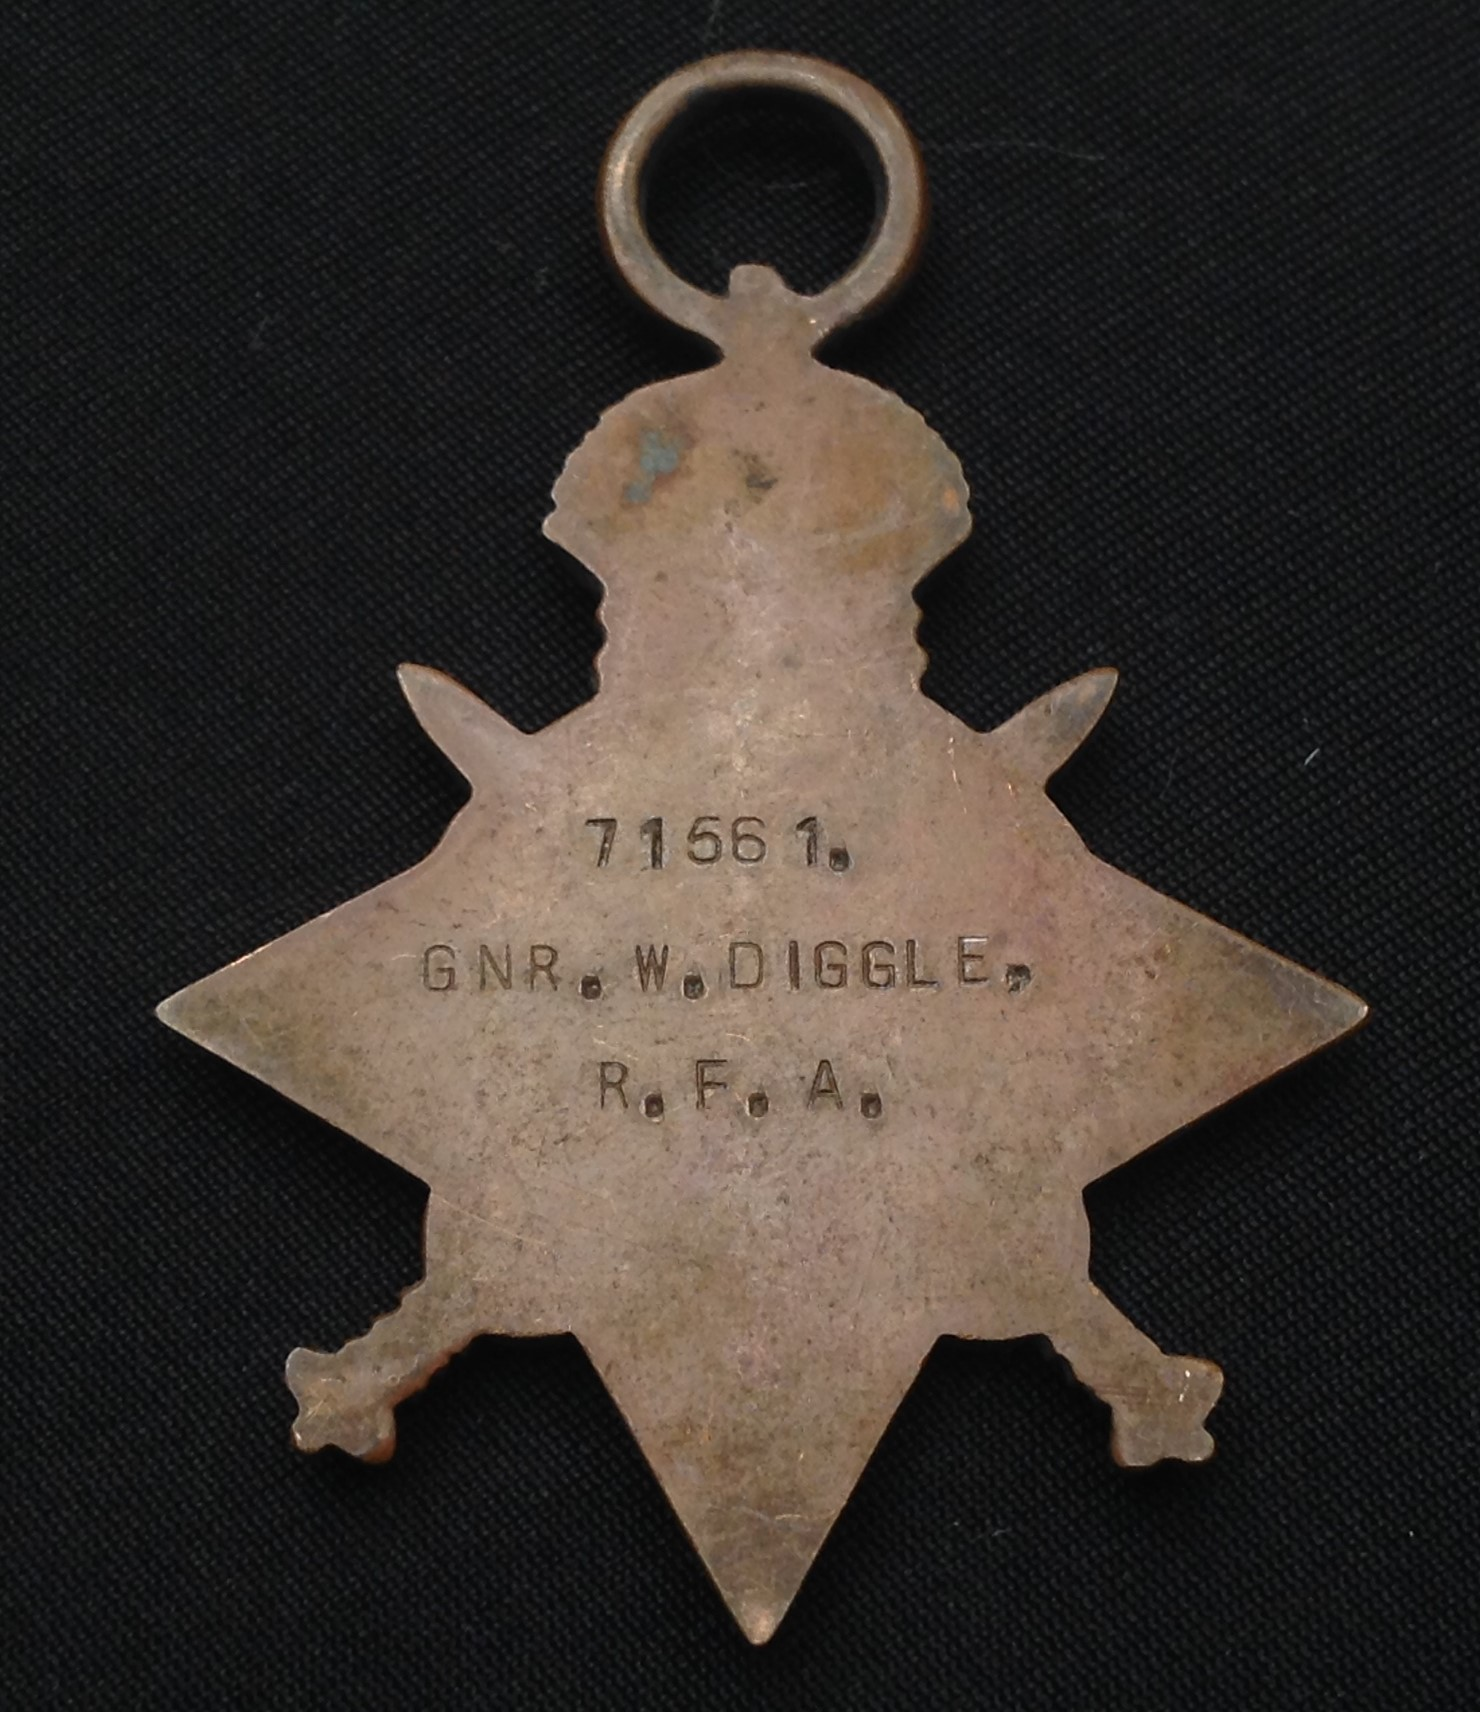 WW1 British Medal group to 71561 Gnr W Diggle, RFA, comprising of 1914-15 Star, British War Medal - Image 2 of 4